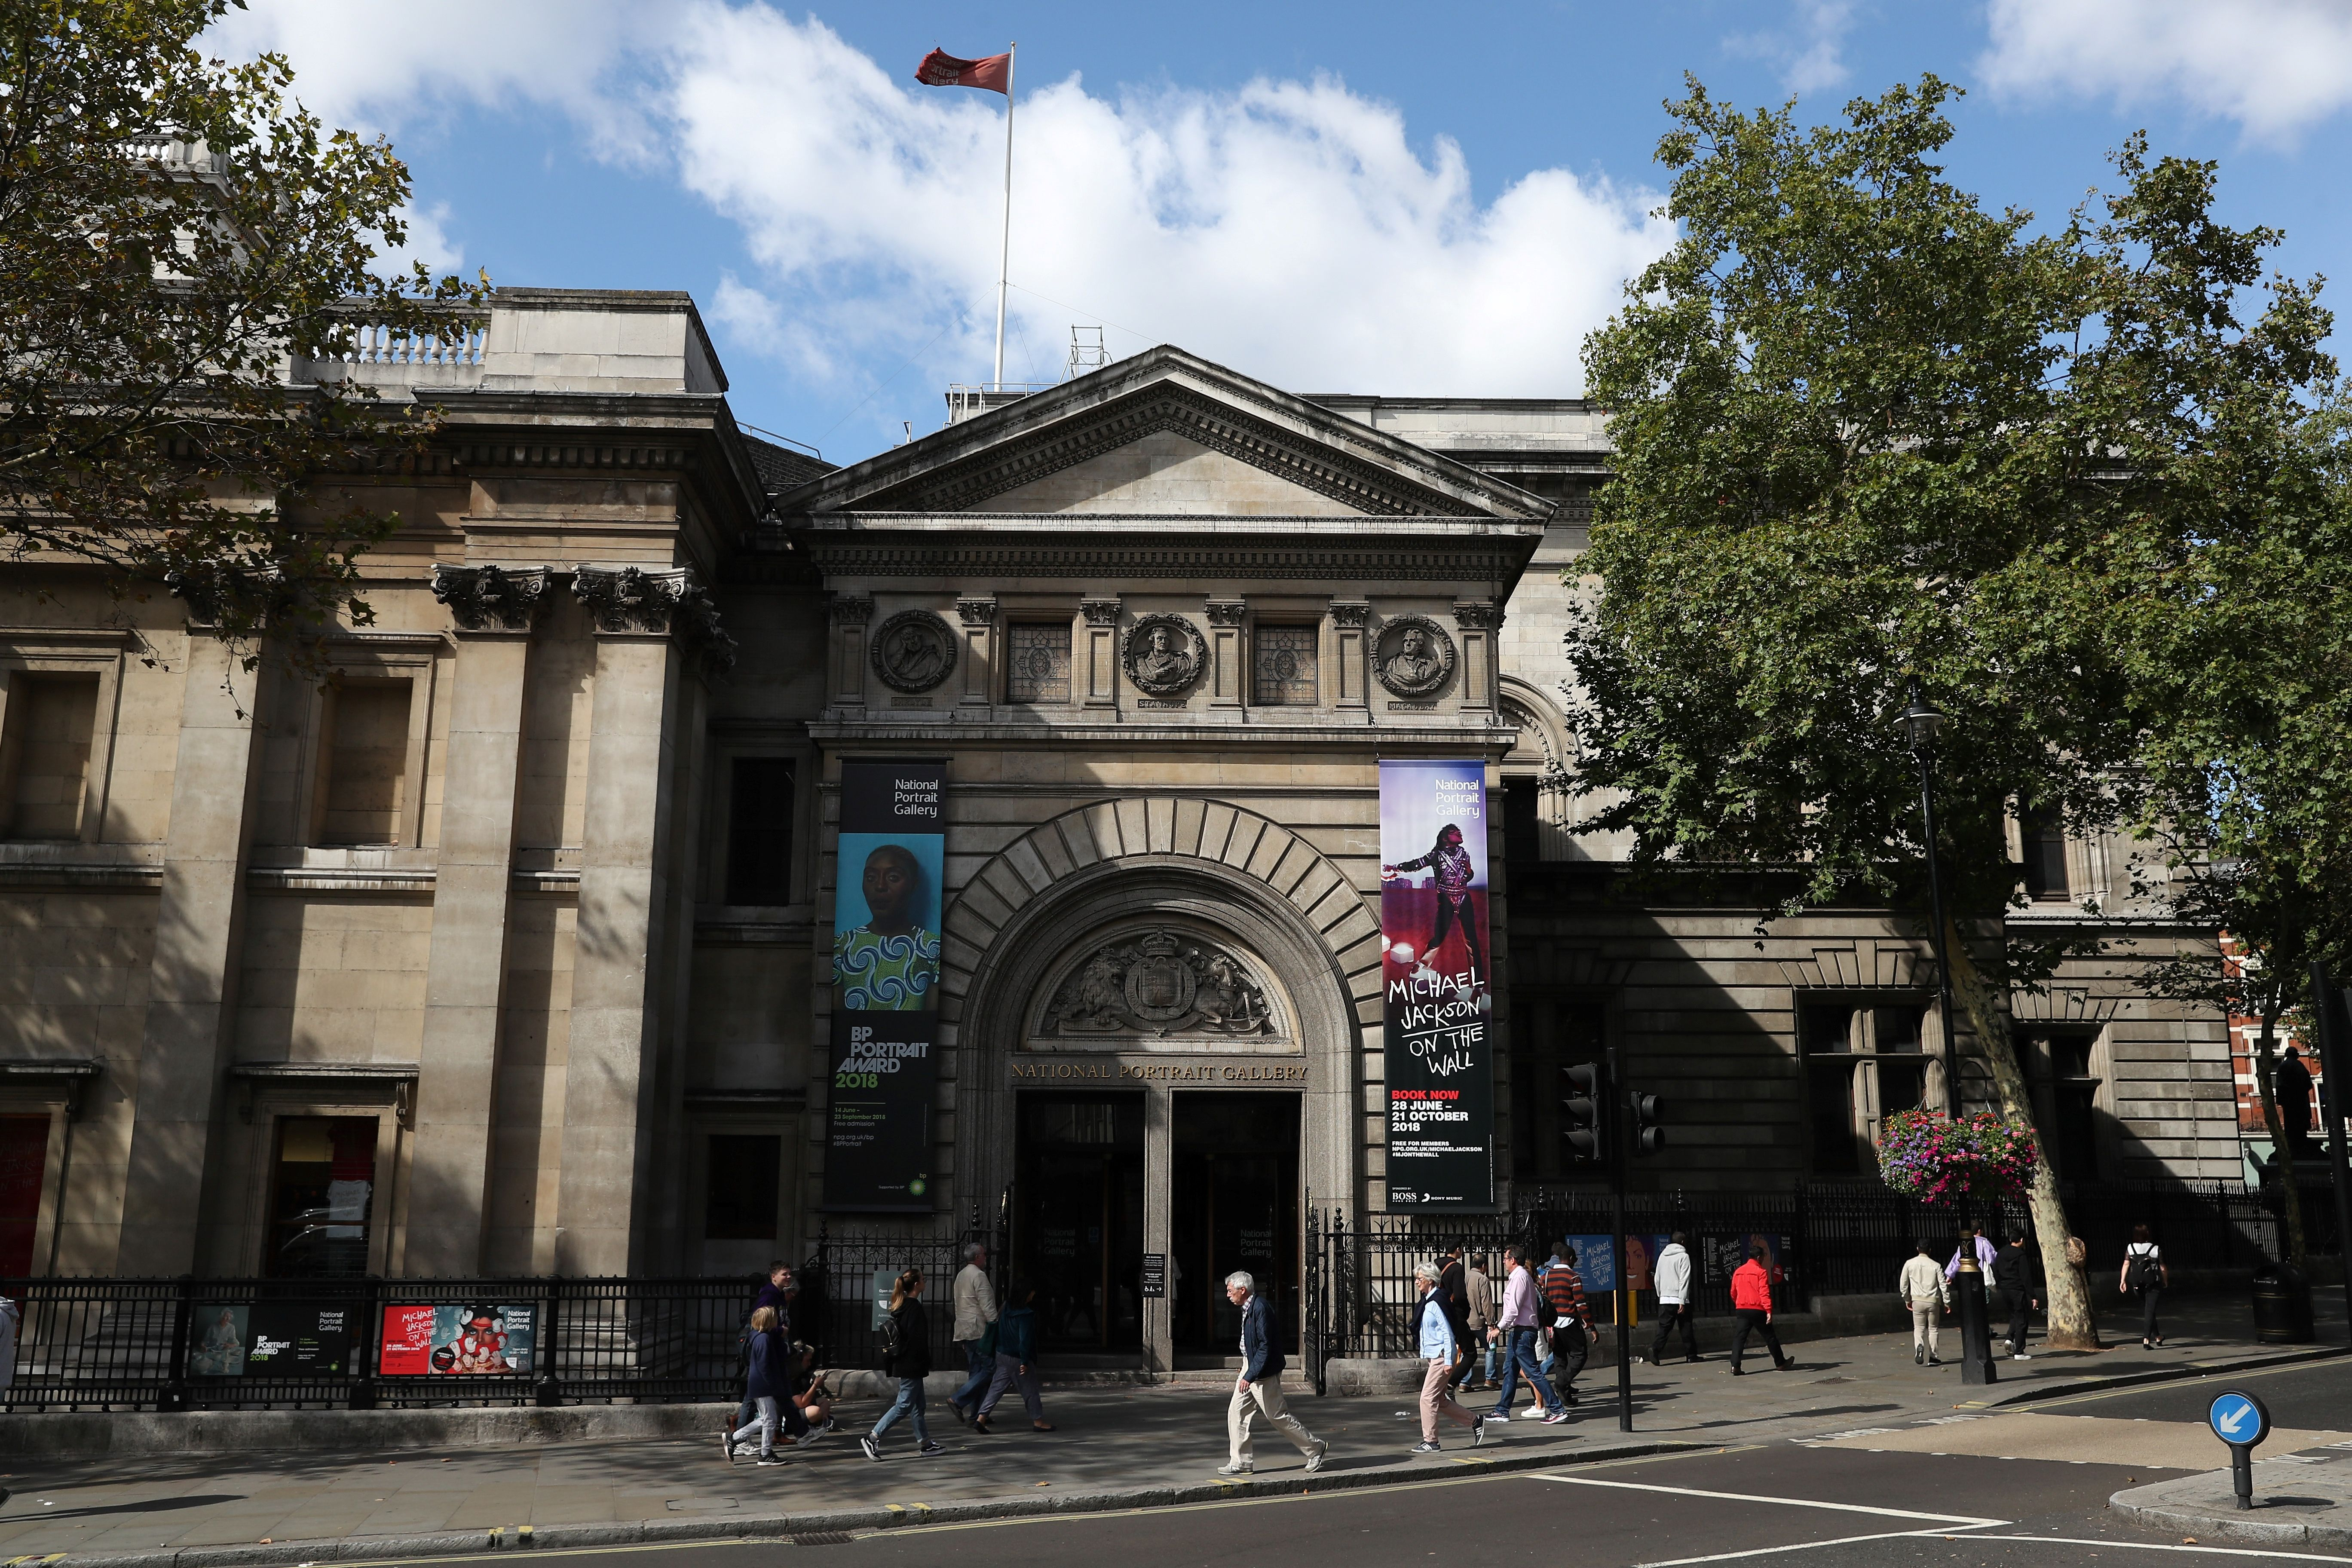 Pedestrians walk past the entrance to the National Portrait Gallery in central London on August 24, 2018. (DANIEL LEAL-OLIVAS/AFP/Getty Images)